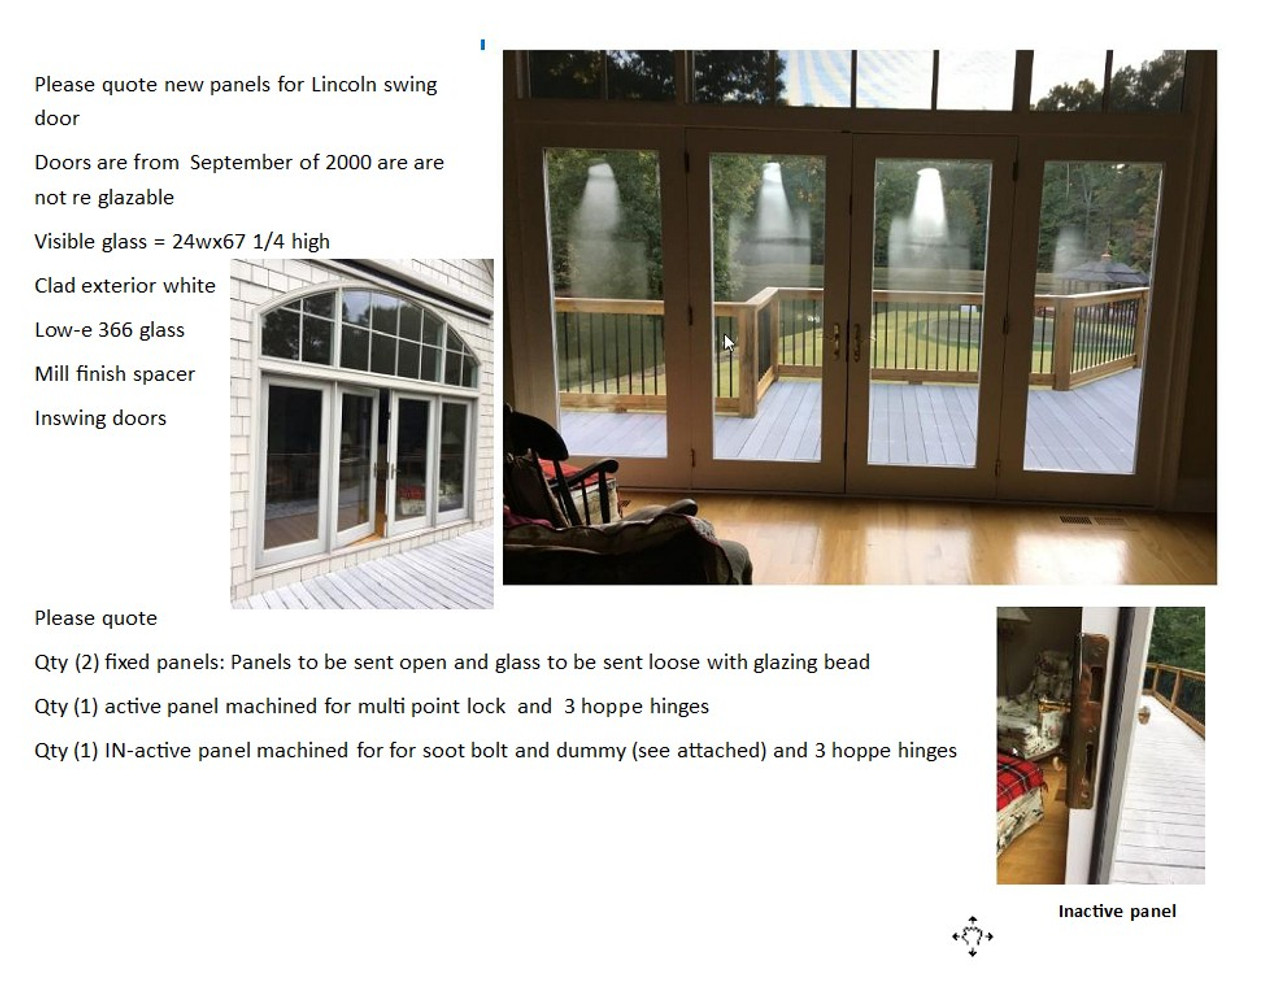 Quantity (4) Lincoln replacement panels for dbl french door and two sidelites, loe 272 glass